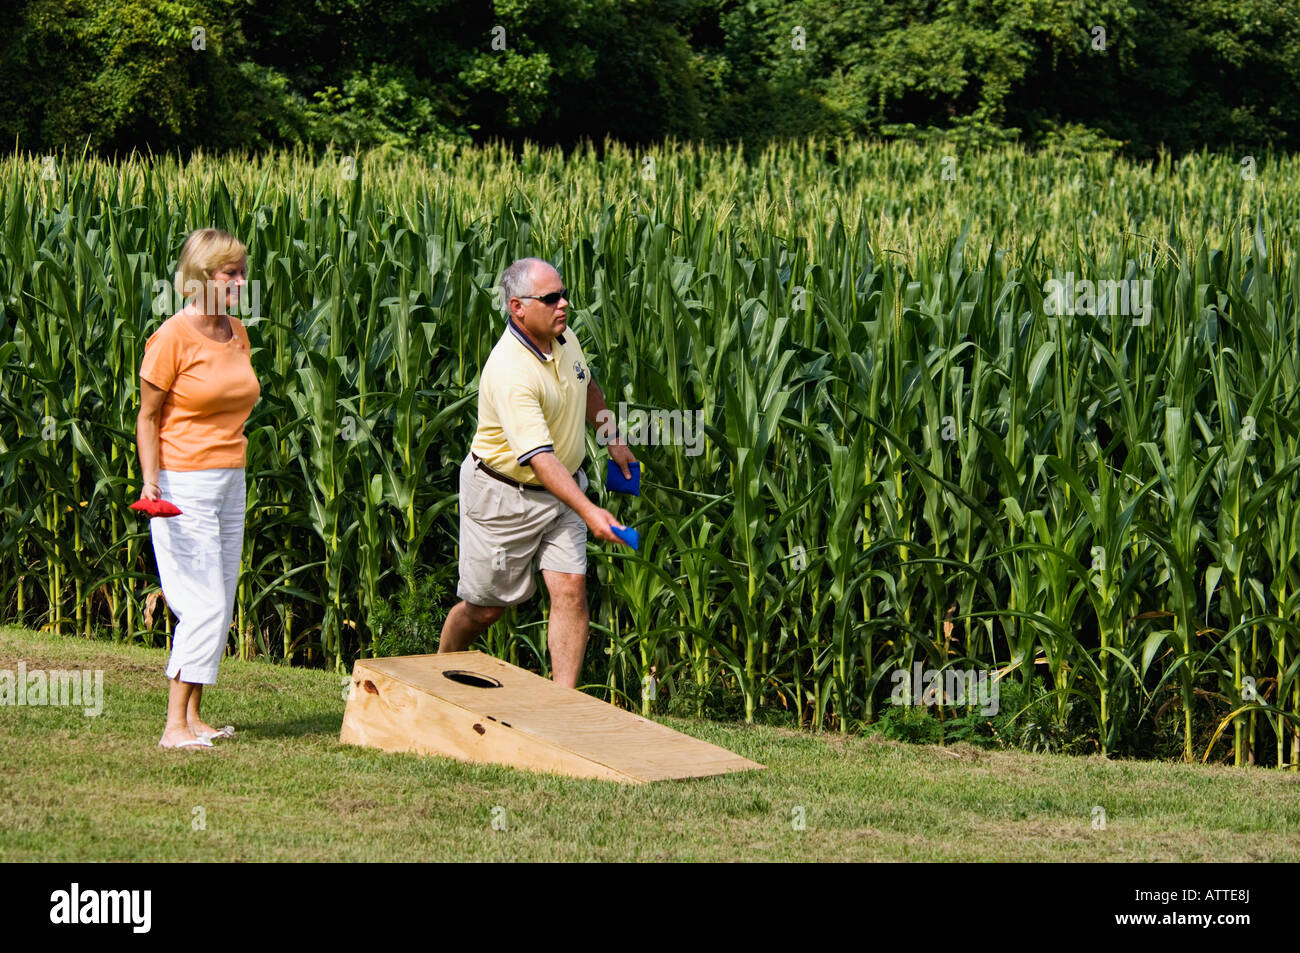 Man and Woman Playing the Game of Cornhole beside Field of Corn Harrison County Indiana - Stock Image